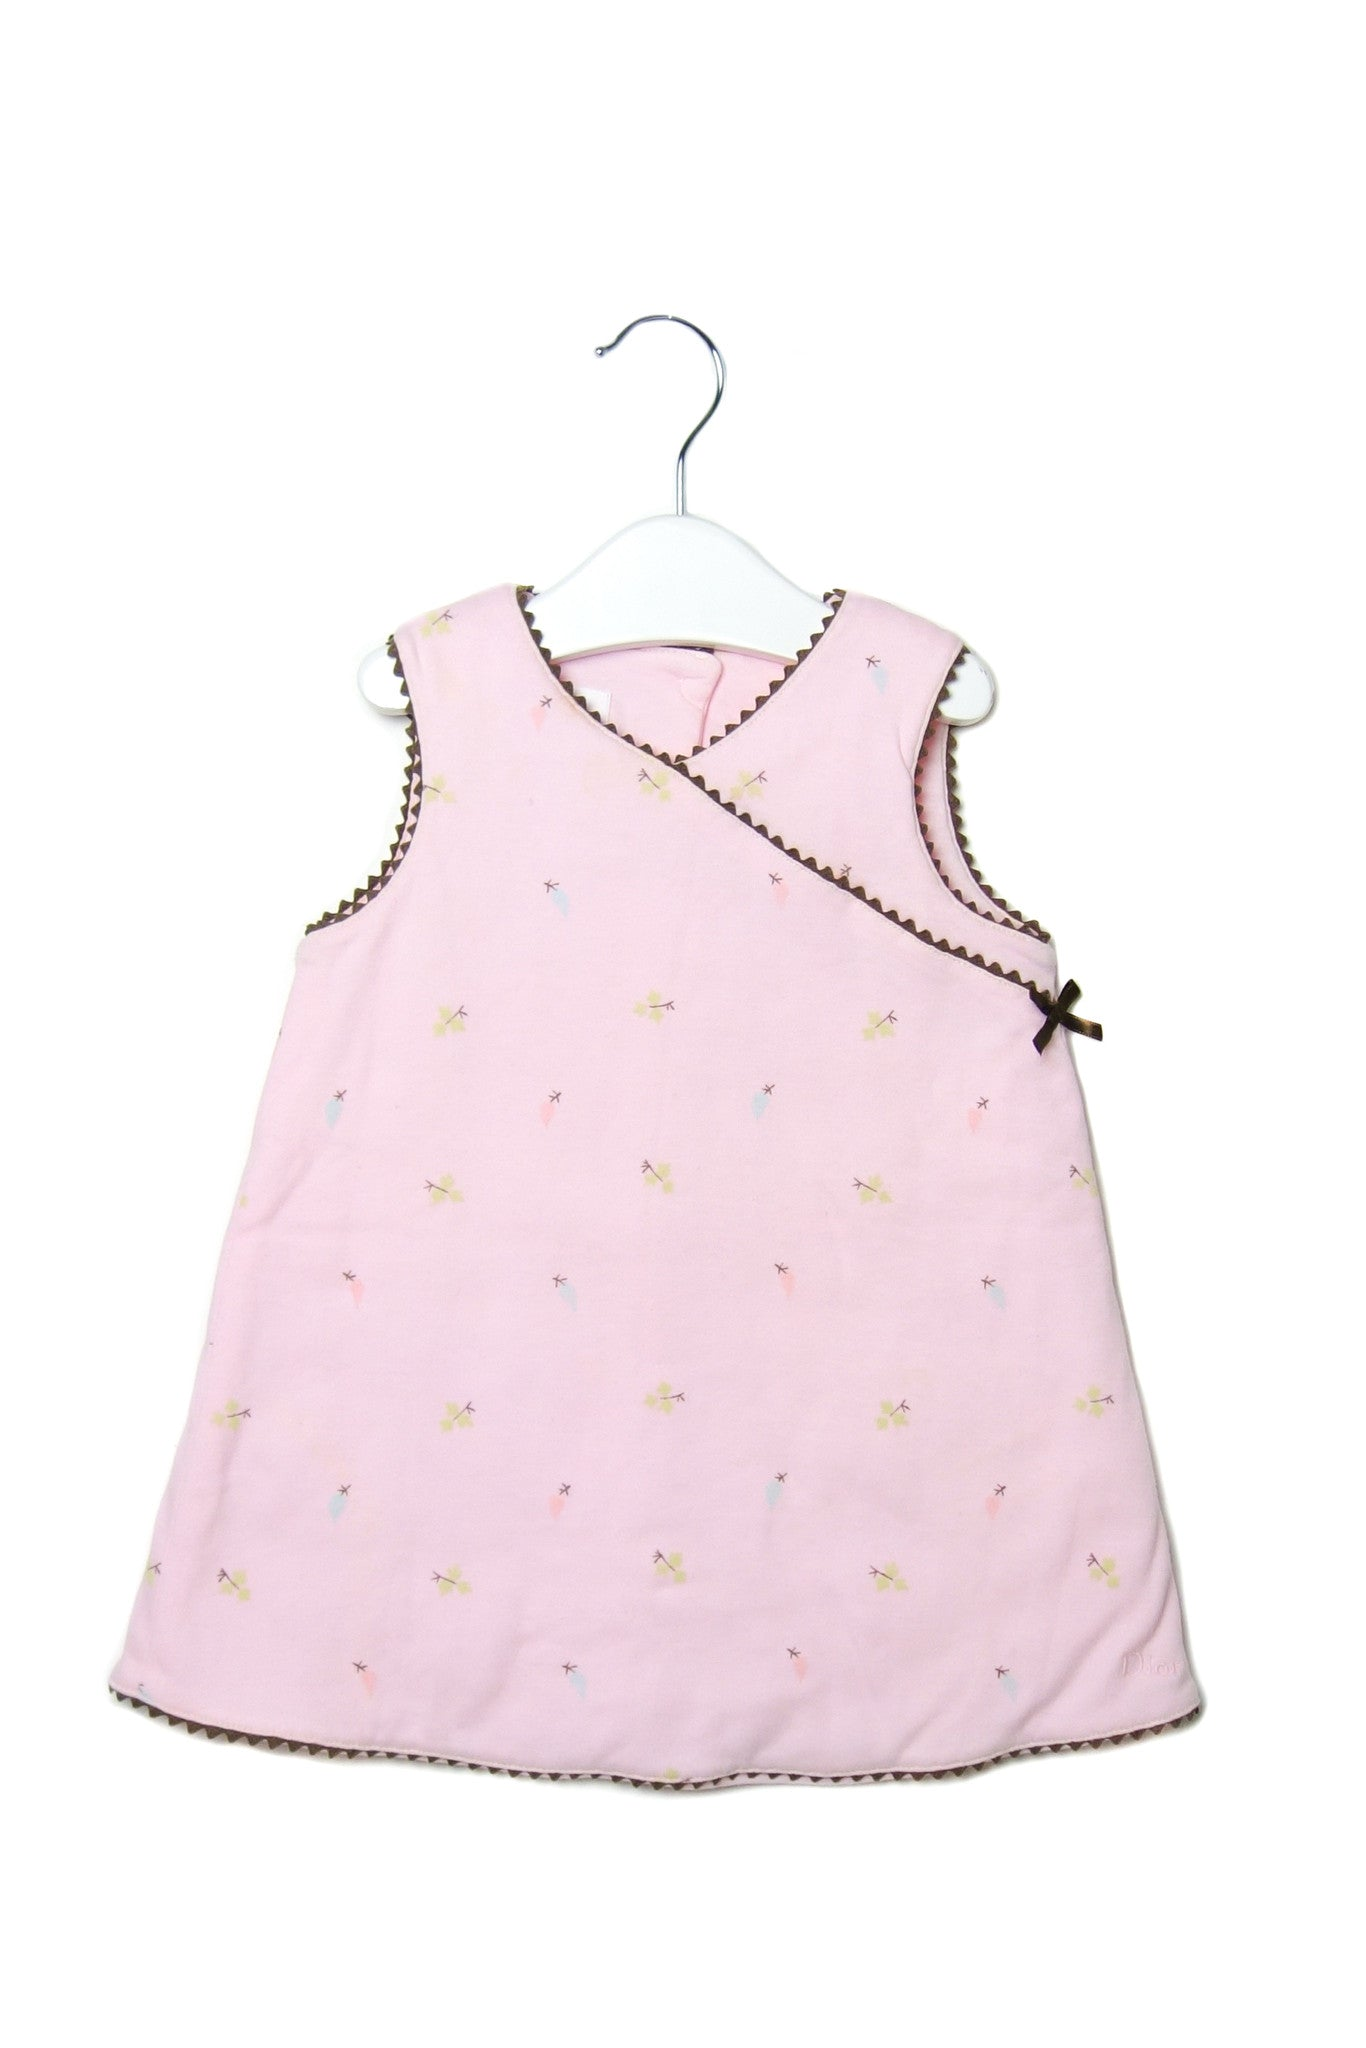 10002113 Dior Baby~Dress 12M at Retykle